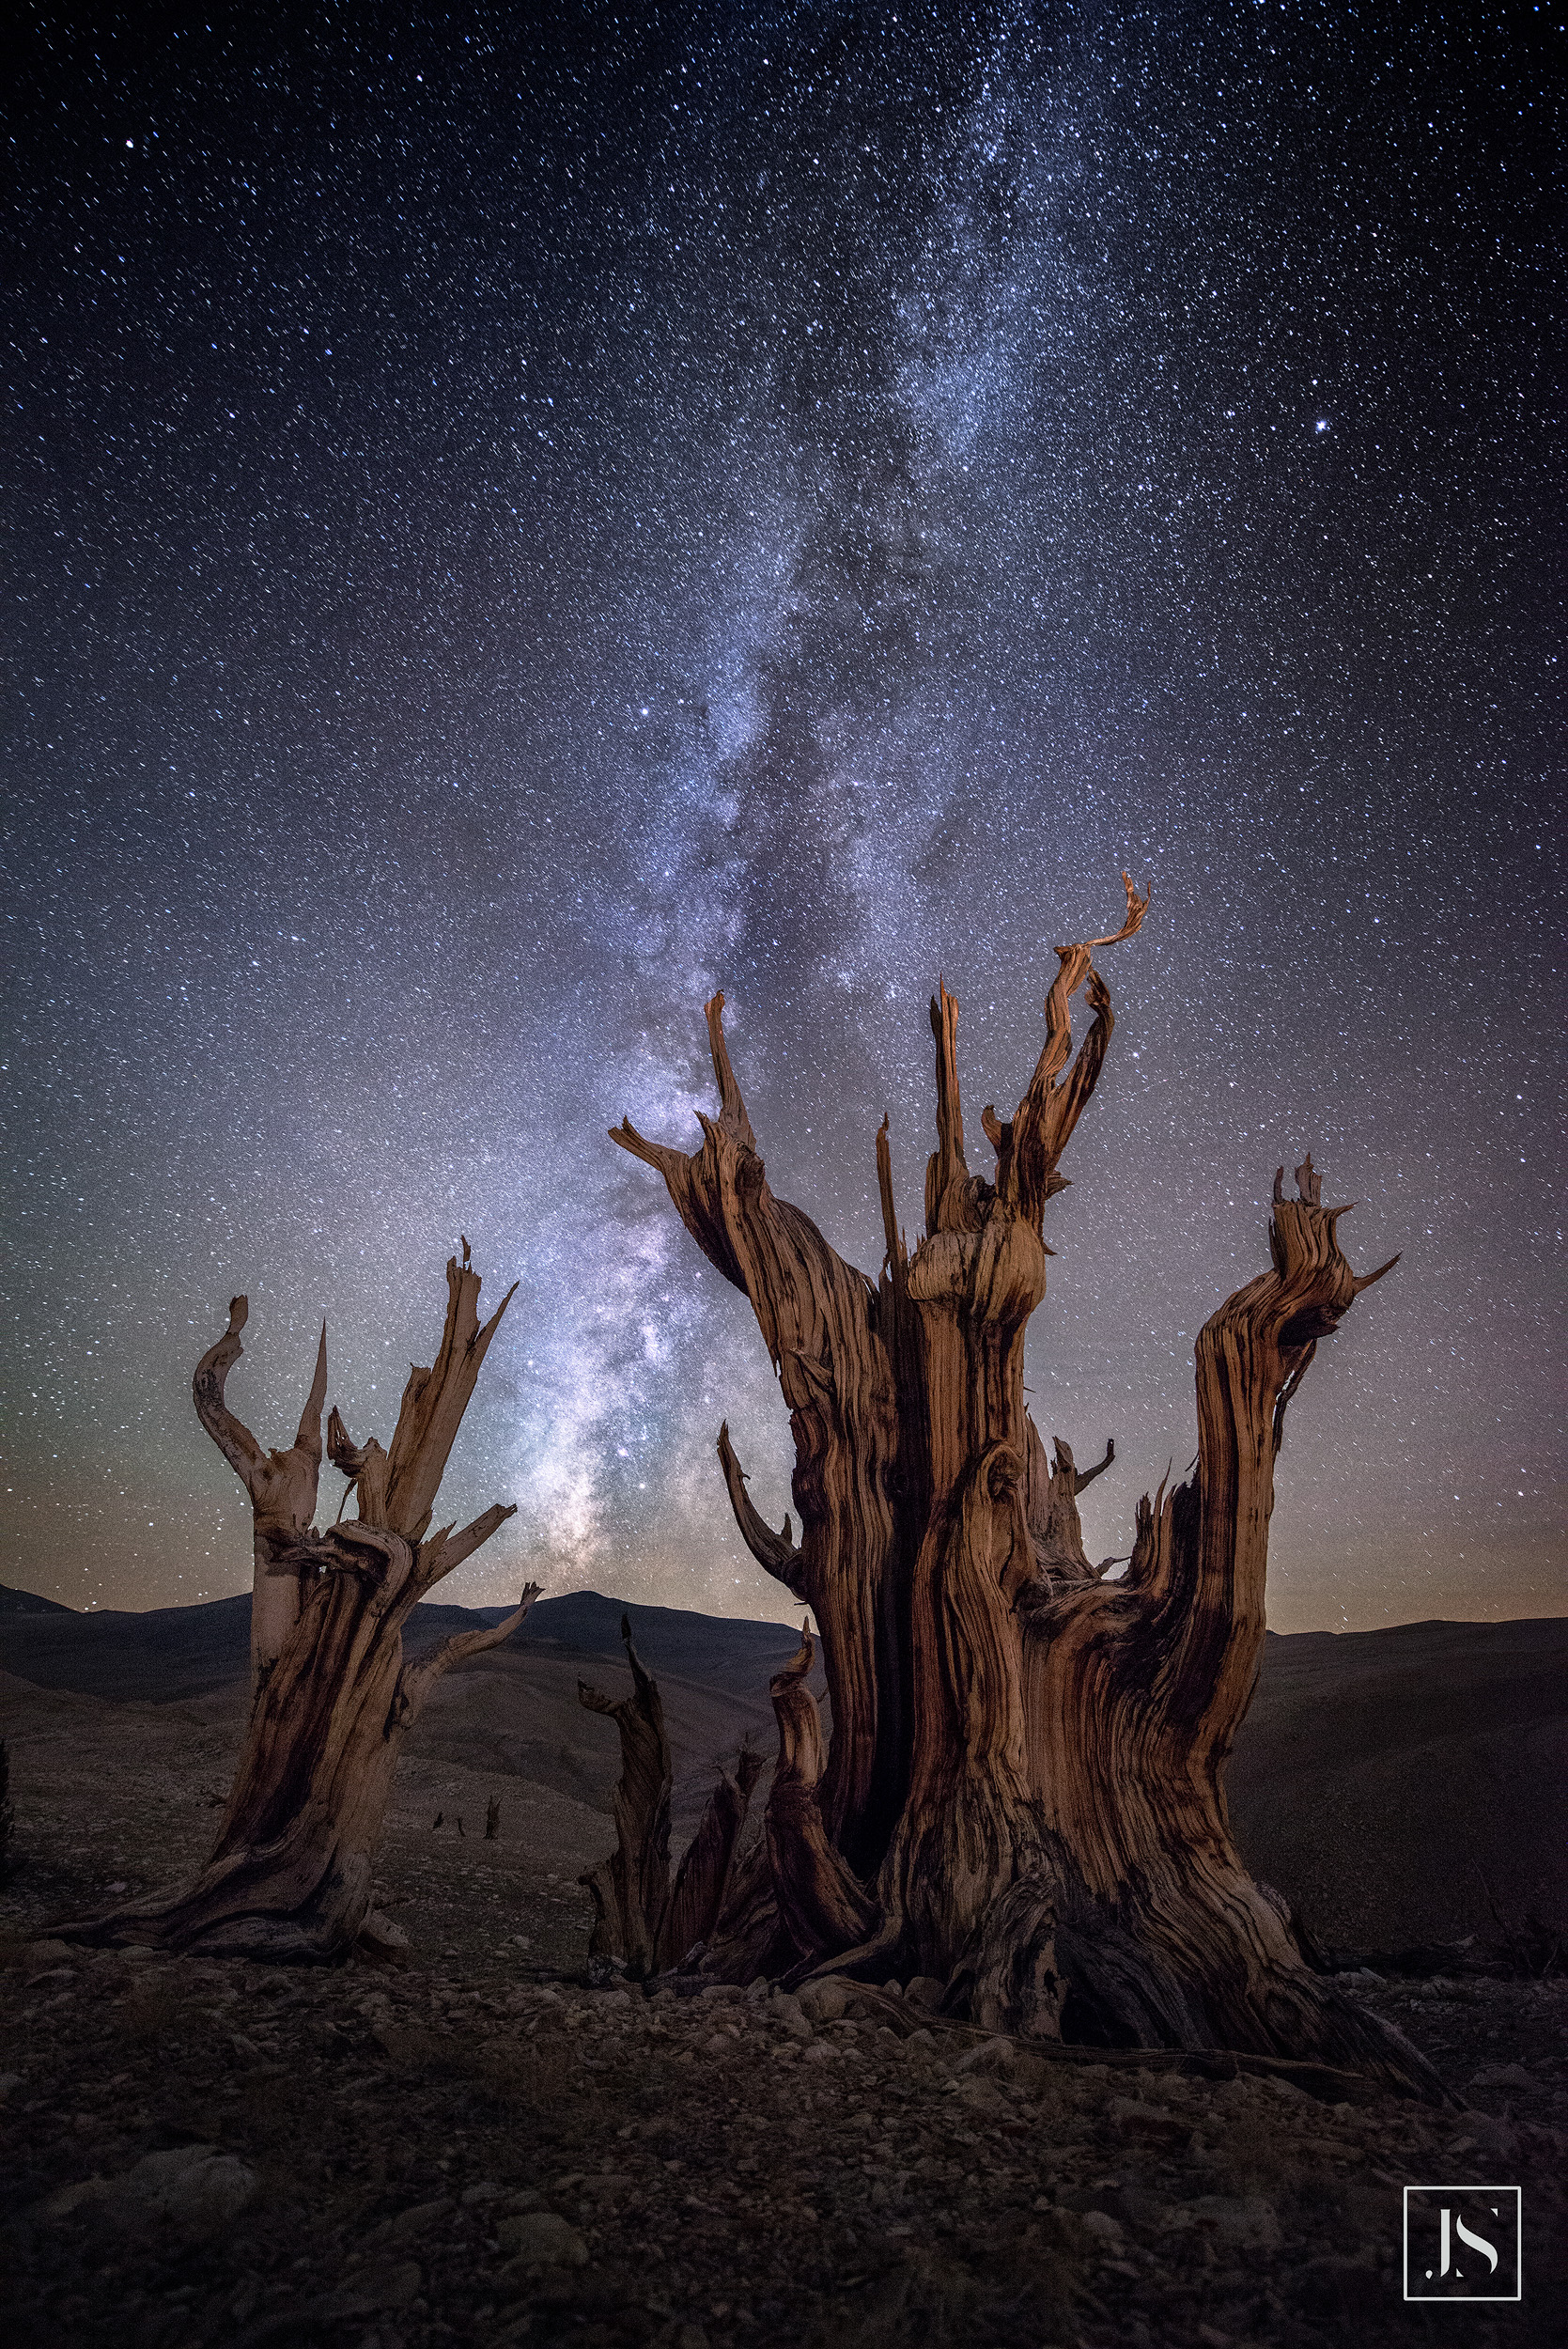 Milky Way over Ancient Bristlecone Pine-2015